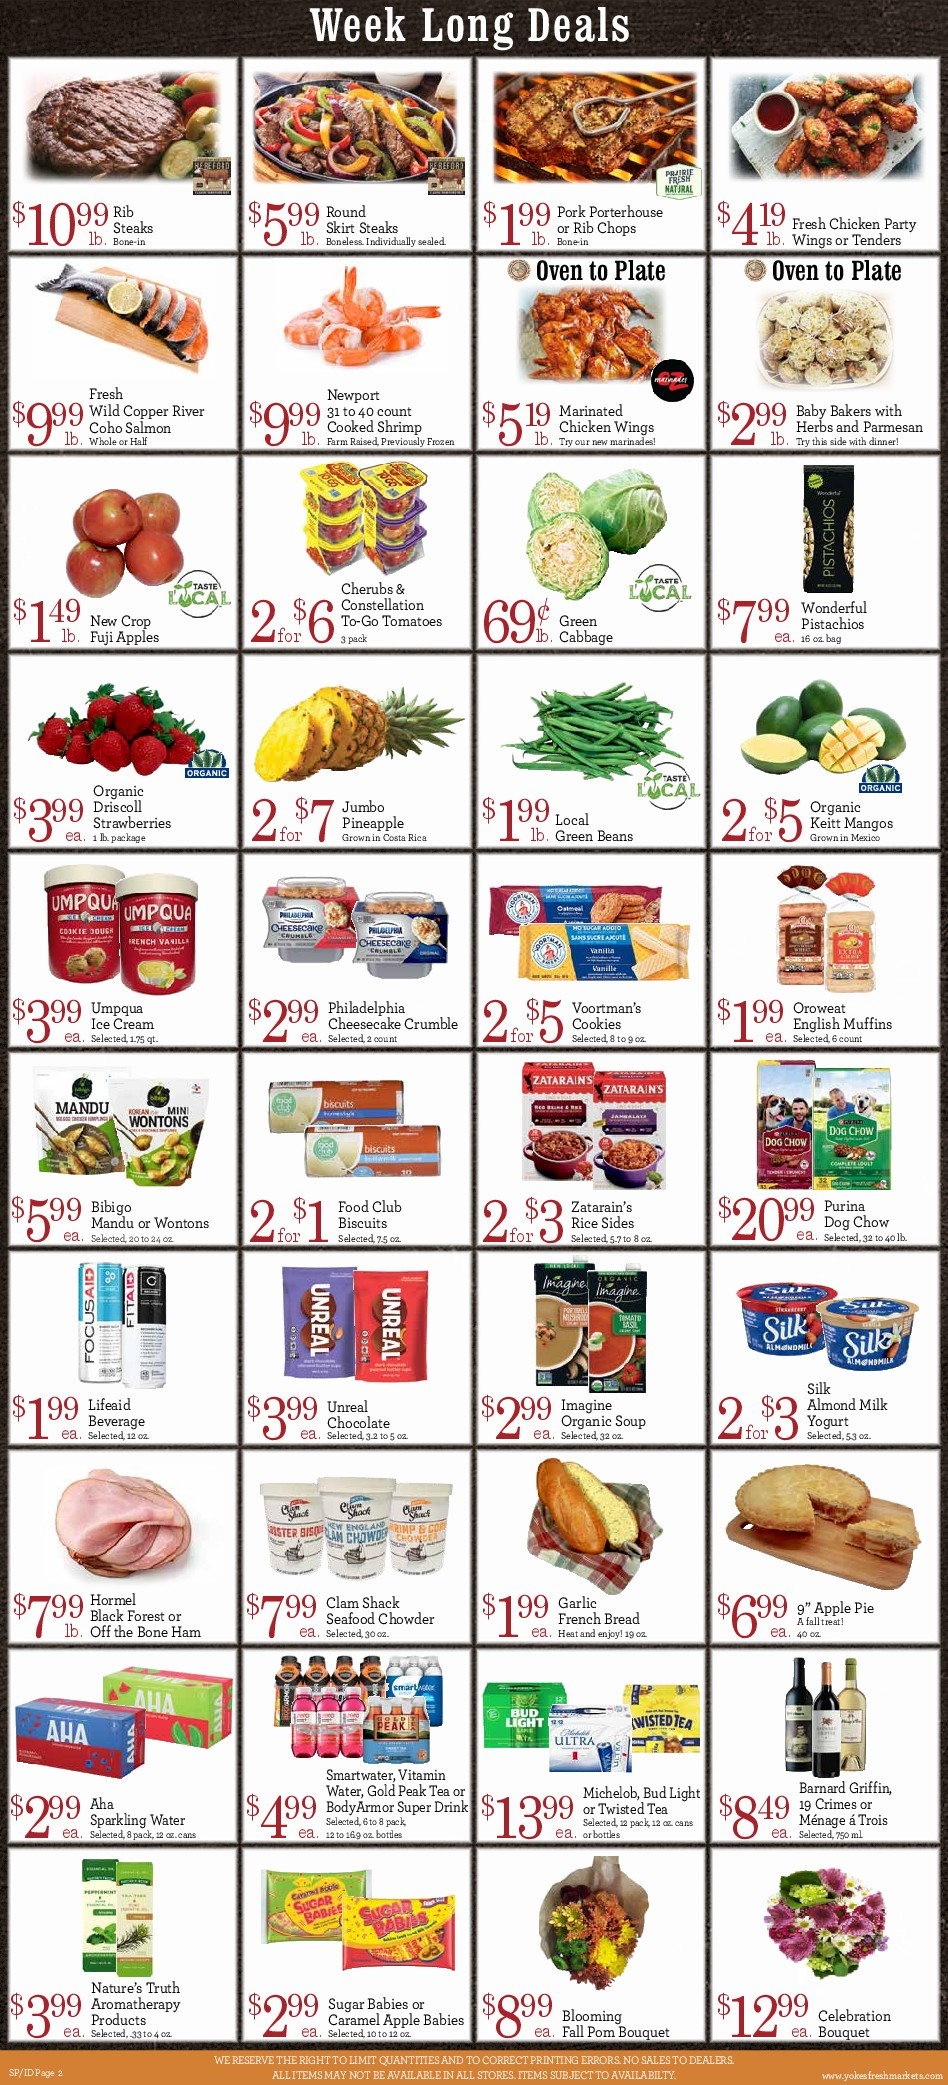 Page 2 of 09.22.21 Weekly Ad